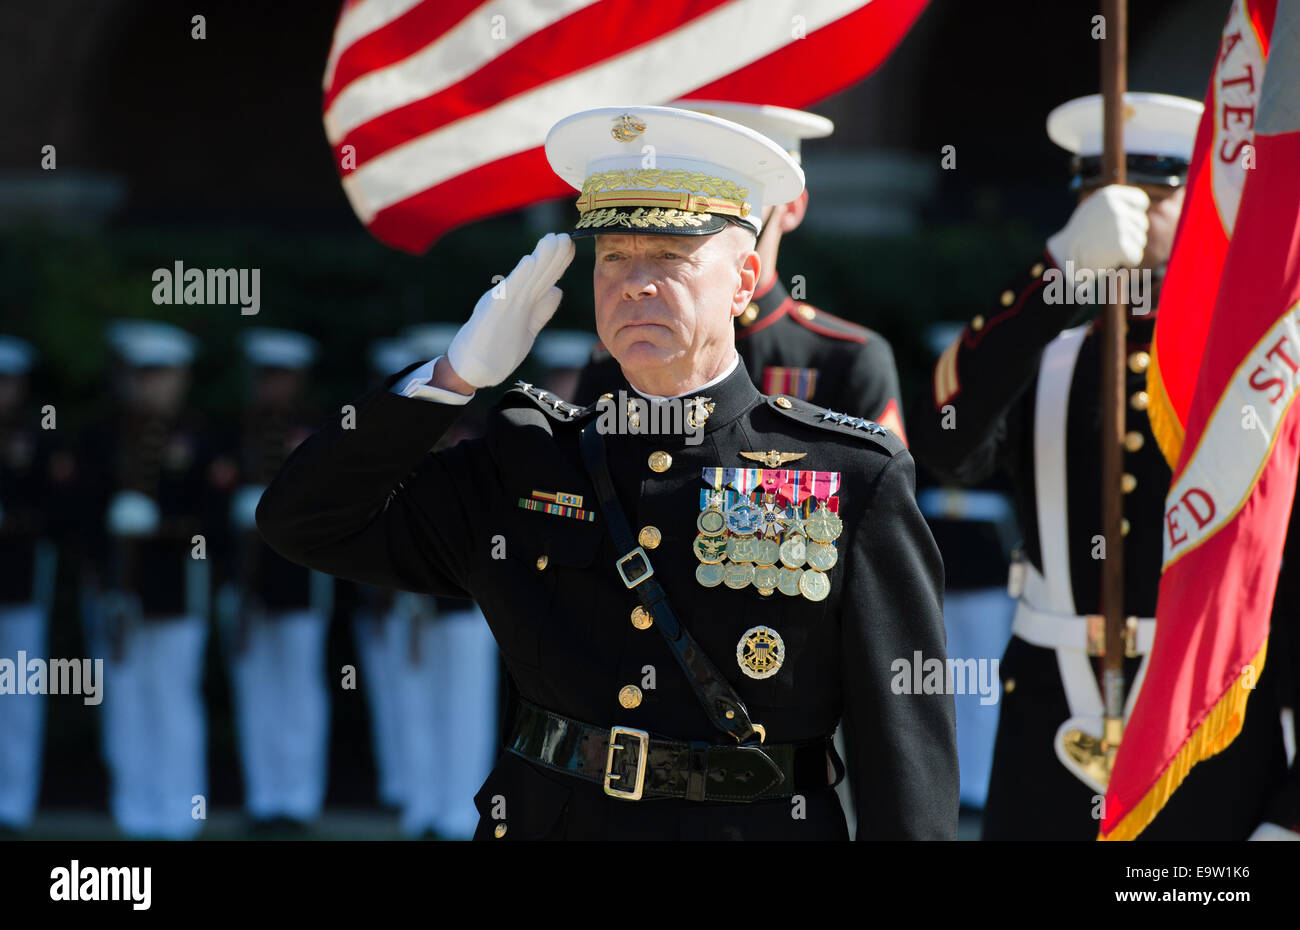 U.S. Marine Corps Gen. James F. Amos, the outgoing commandant of the Marine Corps, salutes during a change of command - Stock Image